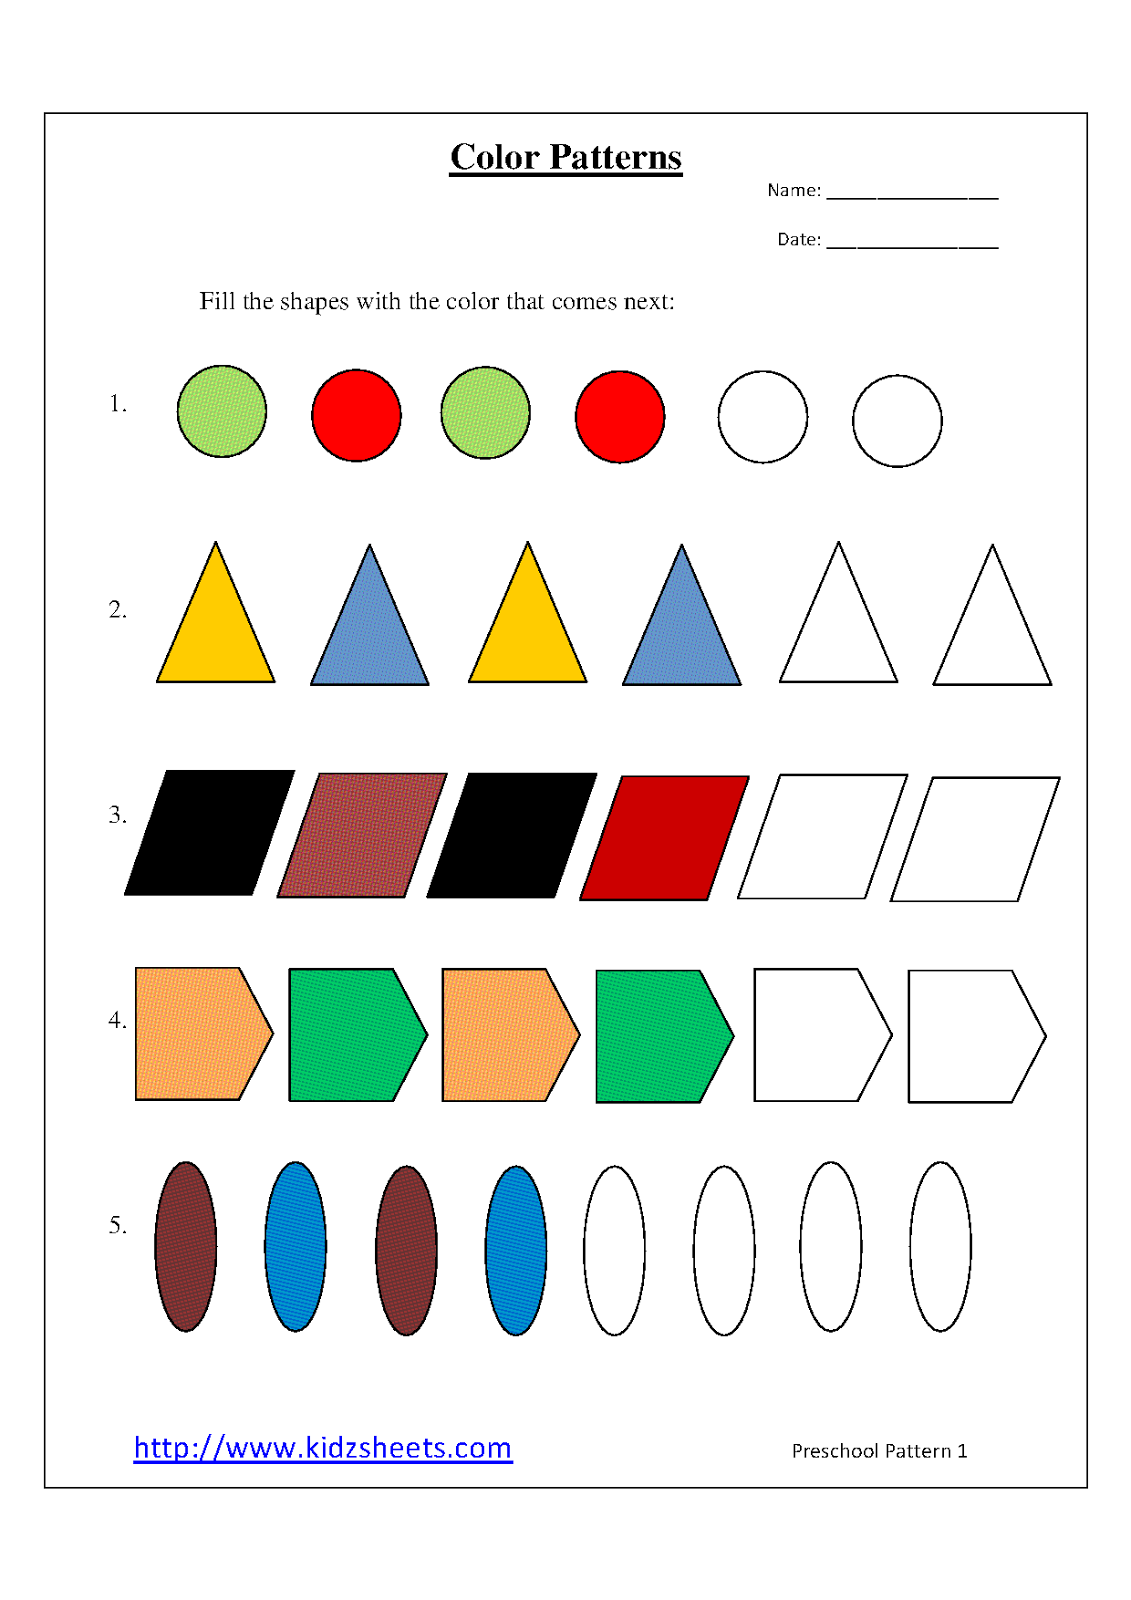 Kidz Worksheets Preschool Color Patterns Worksheet1 In